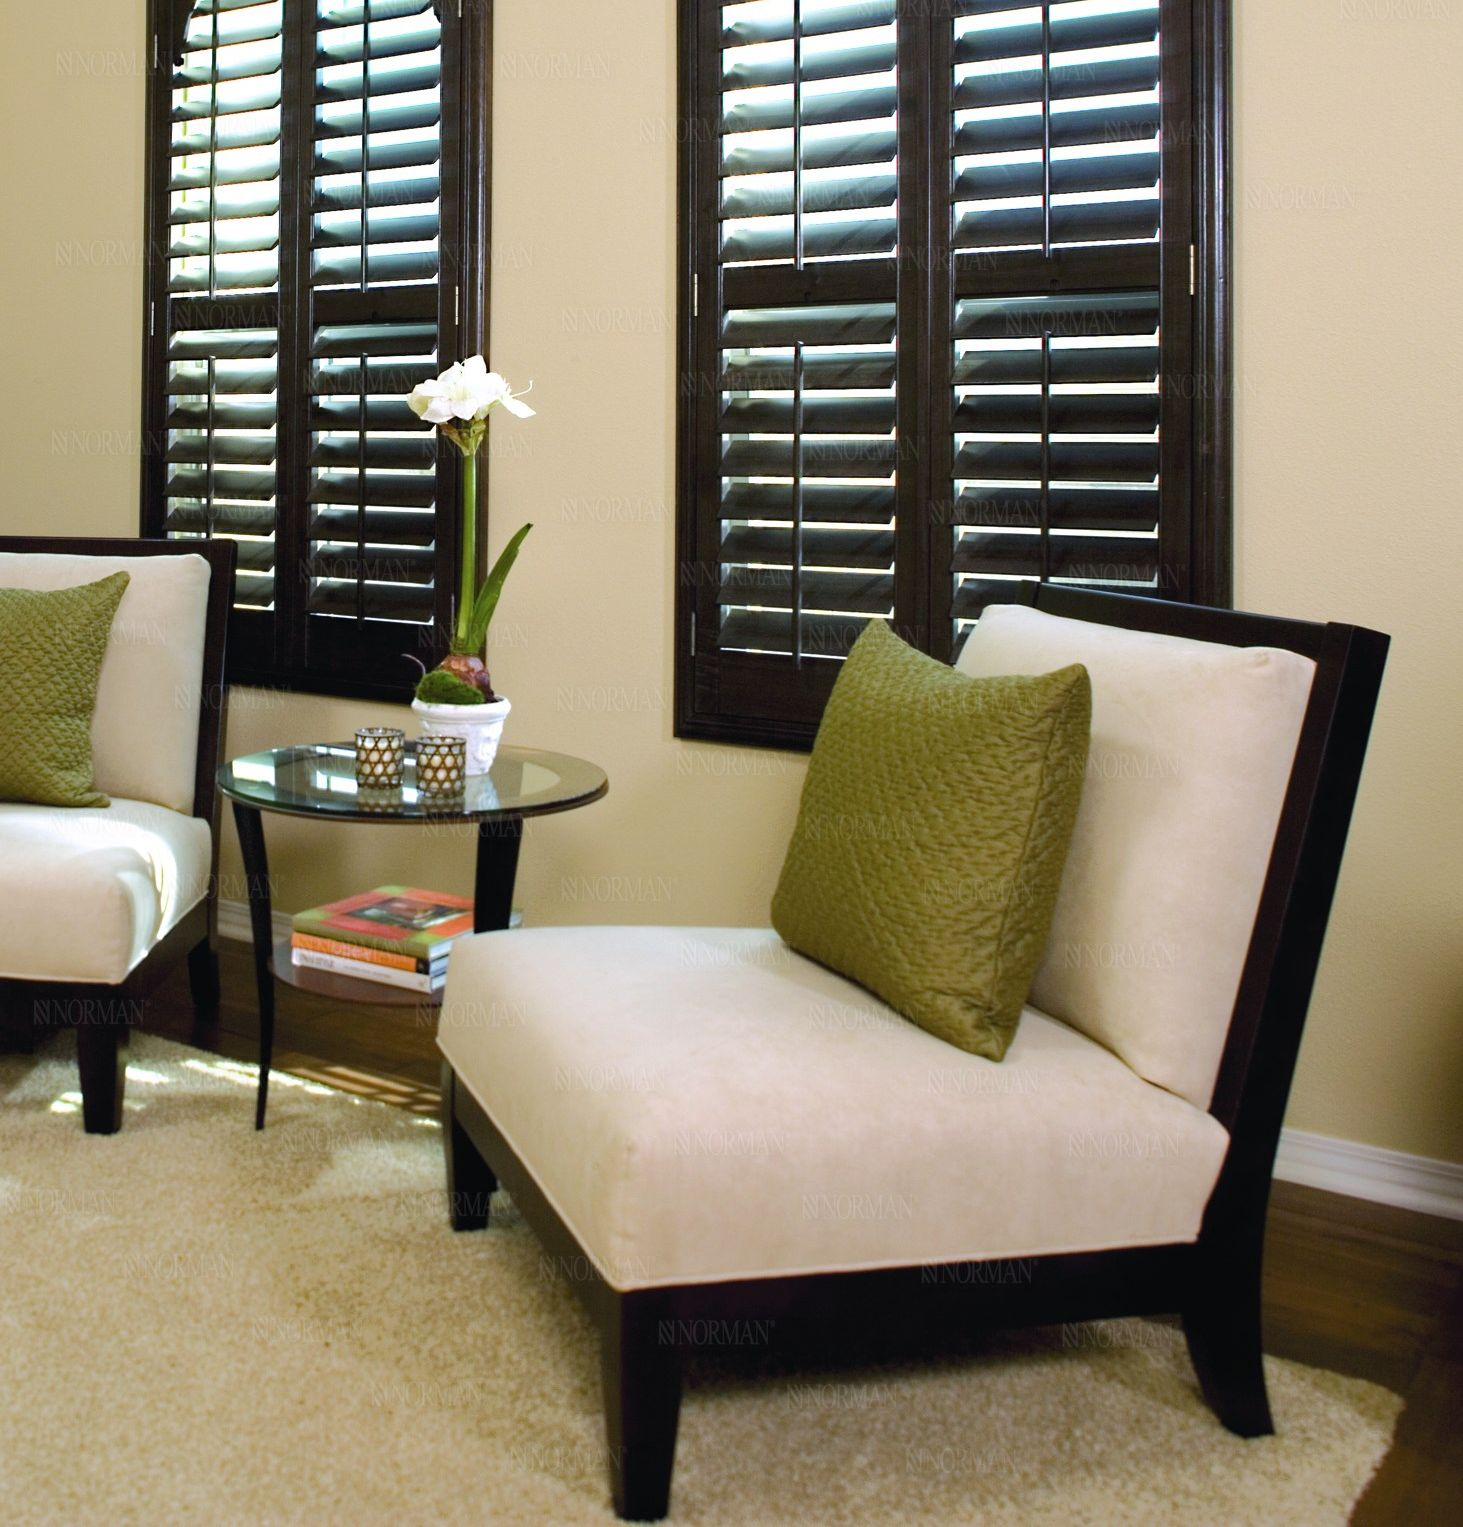 How Much Does Plantation Shutters Cost Interesting Austin Plantation Shutter Sale With How Much